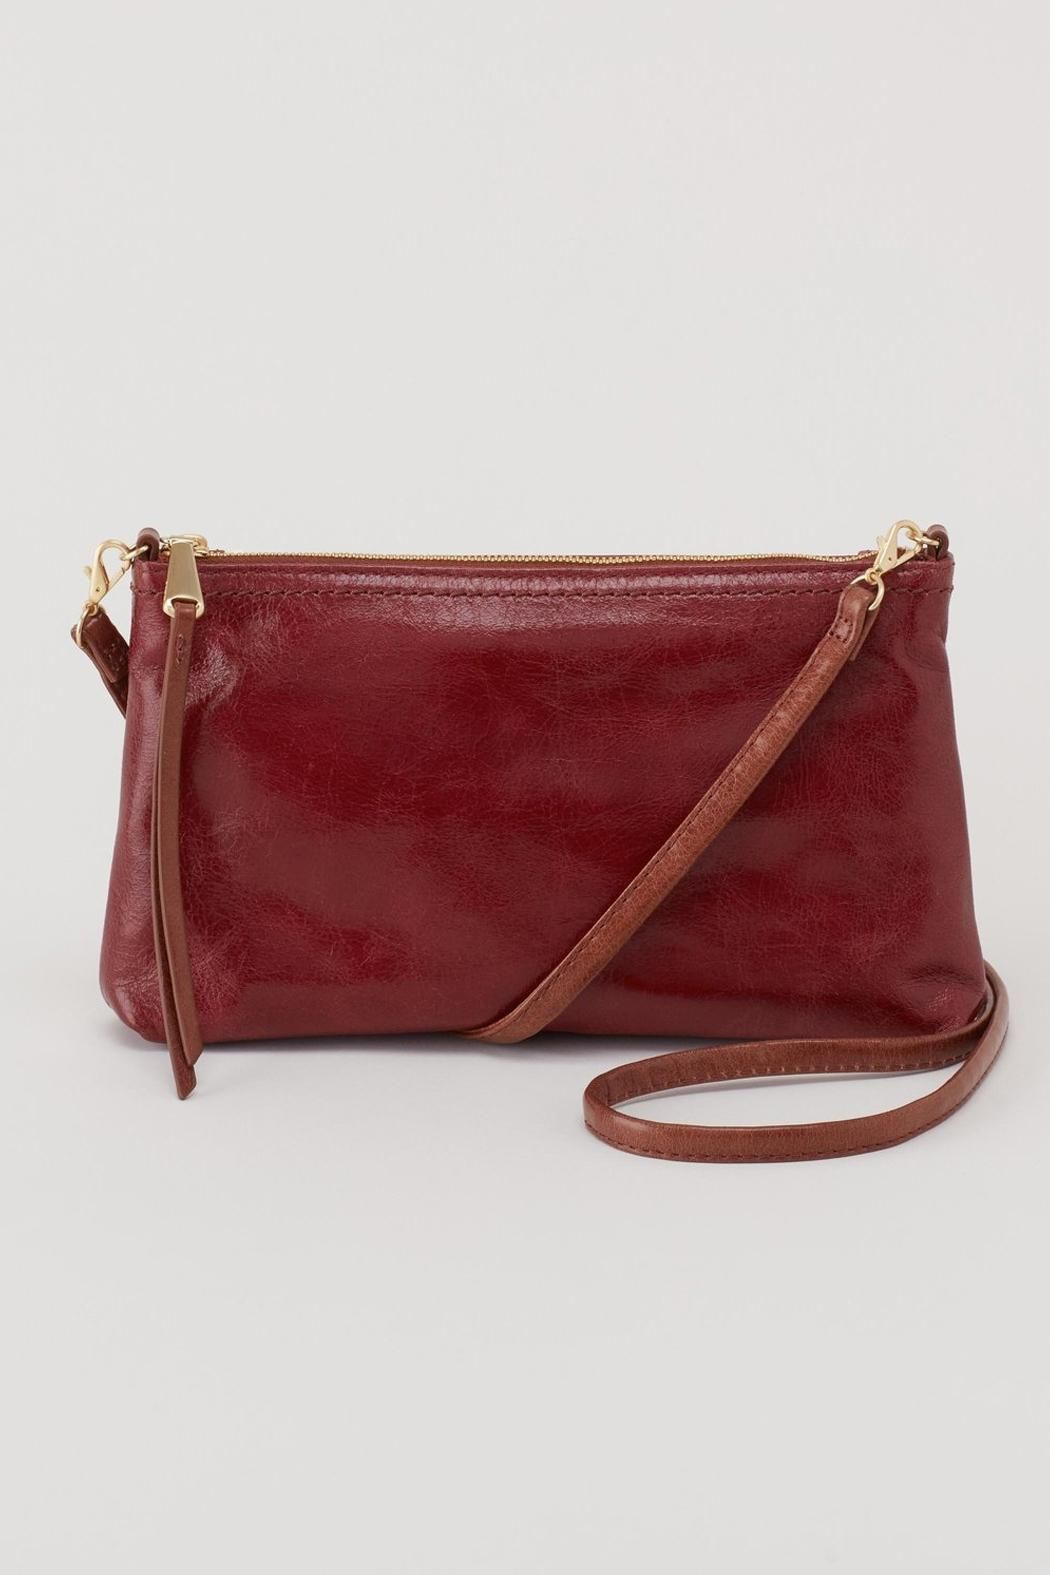 """Convertibility at its finest. Wear the Darcy as a crossbody, wristlet, or mini bag. The strap is easily convertible as well as removable. Gun metal hardware.    Dimensions:9""""W X 5""""H X 1""""D with a convertible 26"""" strap drop.   Darcy Convertible Clutch by Hobo. Bags - Cross Body California"""